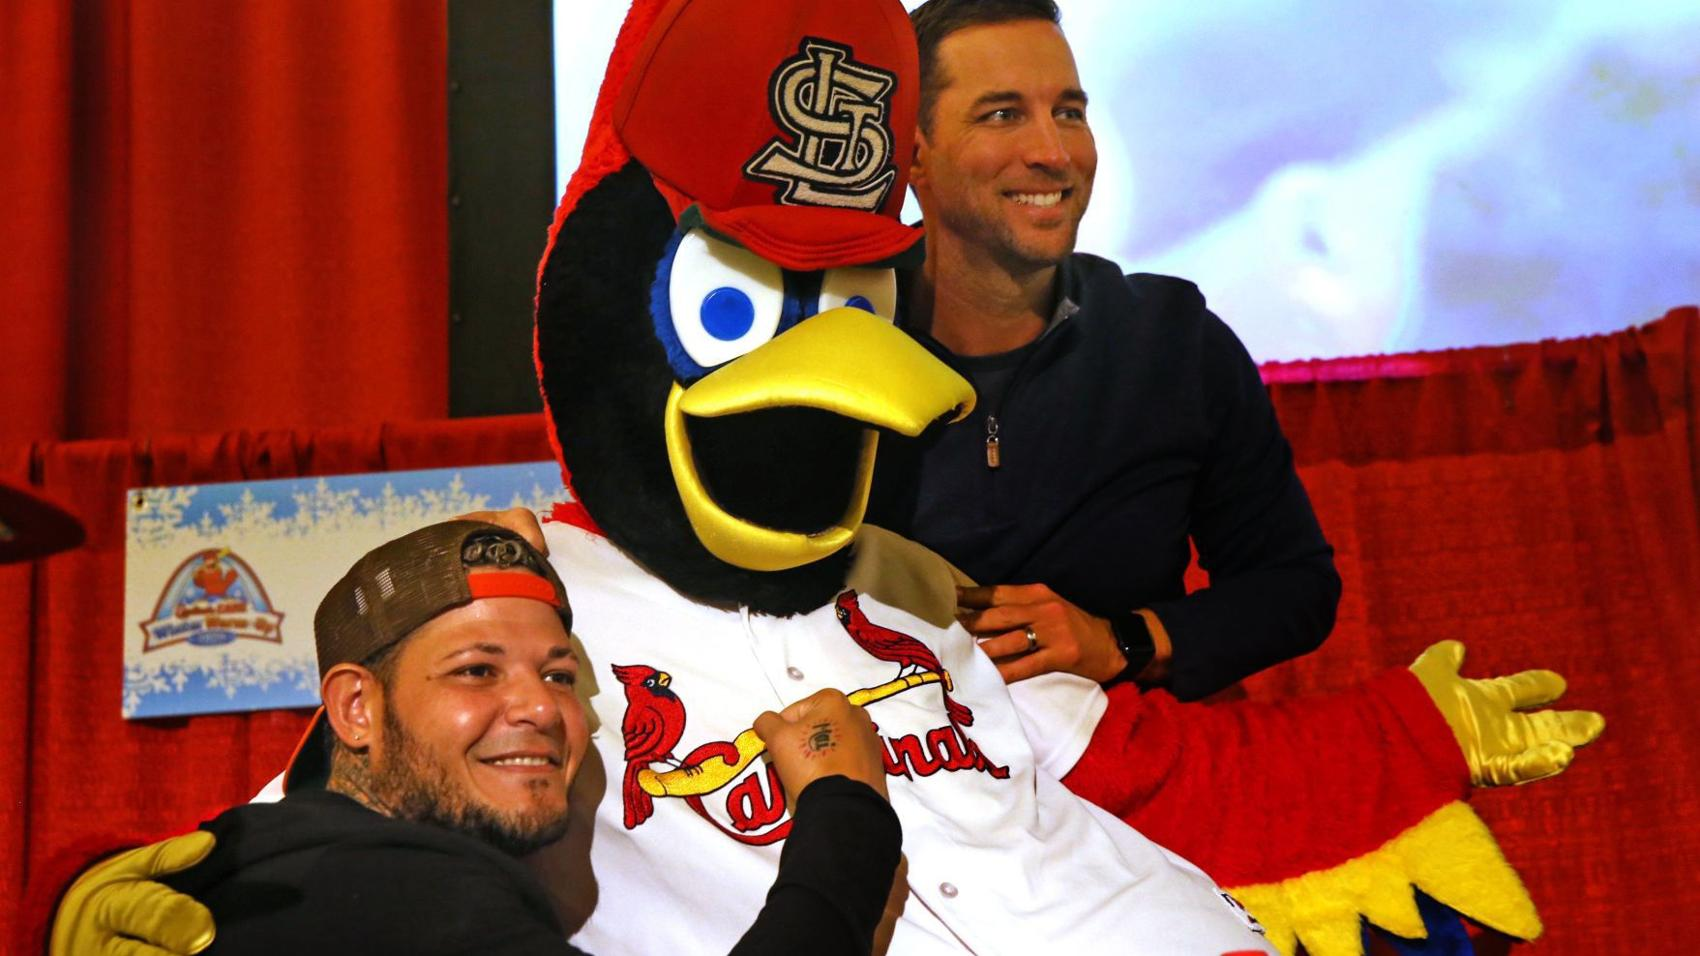 From DeWitt's payroll pronouncement to Shildt's pledge, Cardinals coverage just warming up